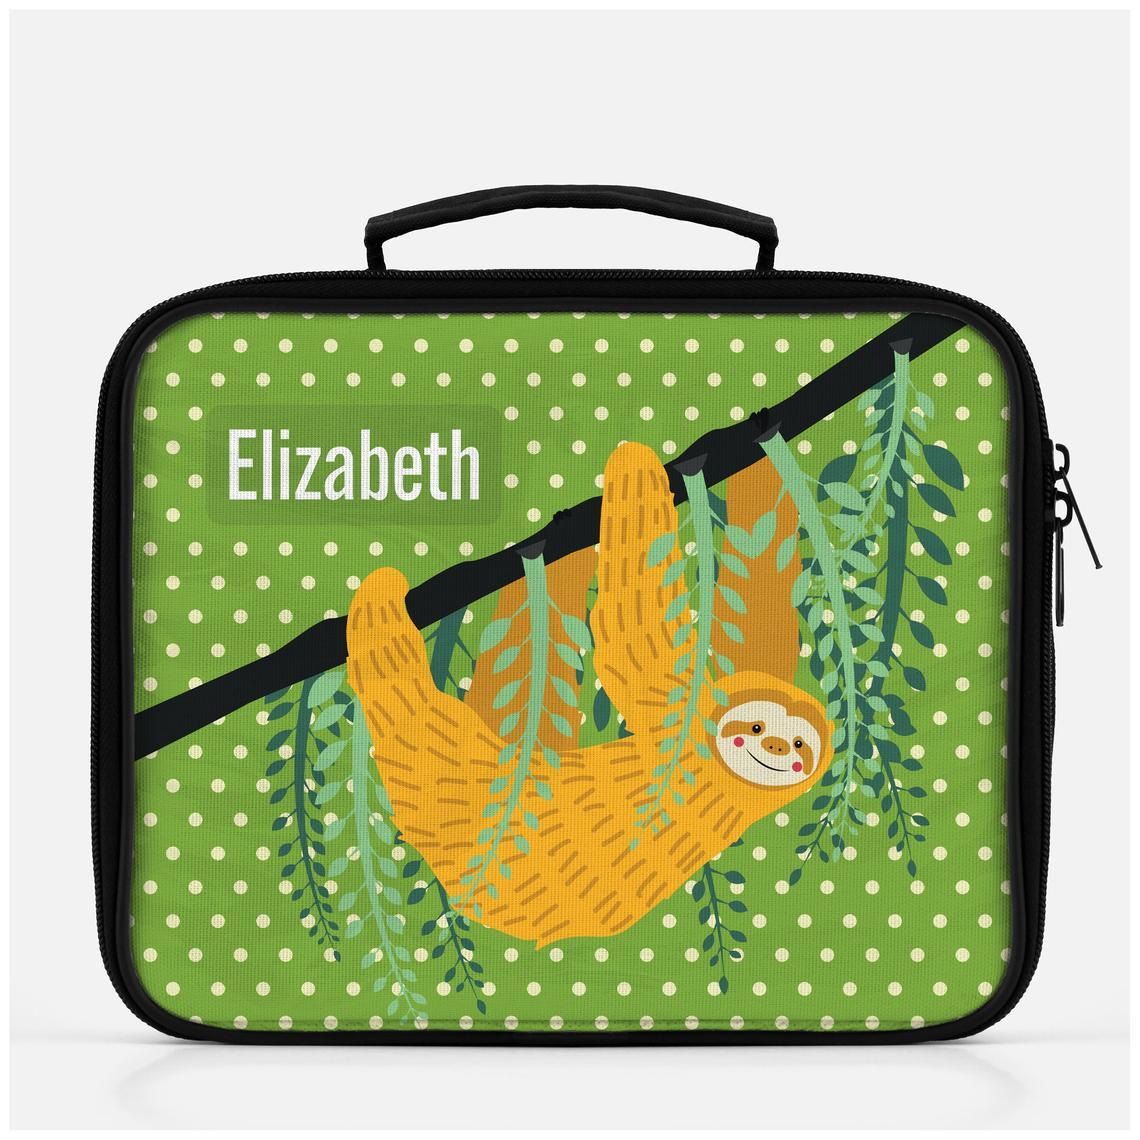 Personalized cute sloth lunch box for kids -  - Imagonarium